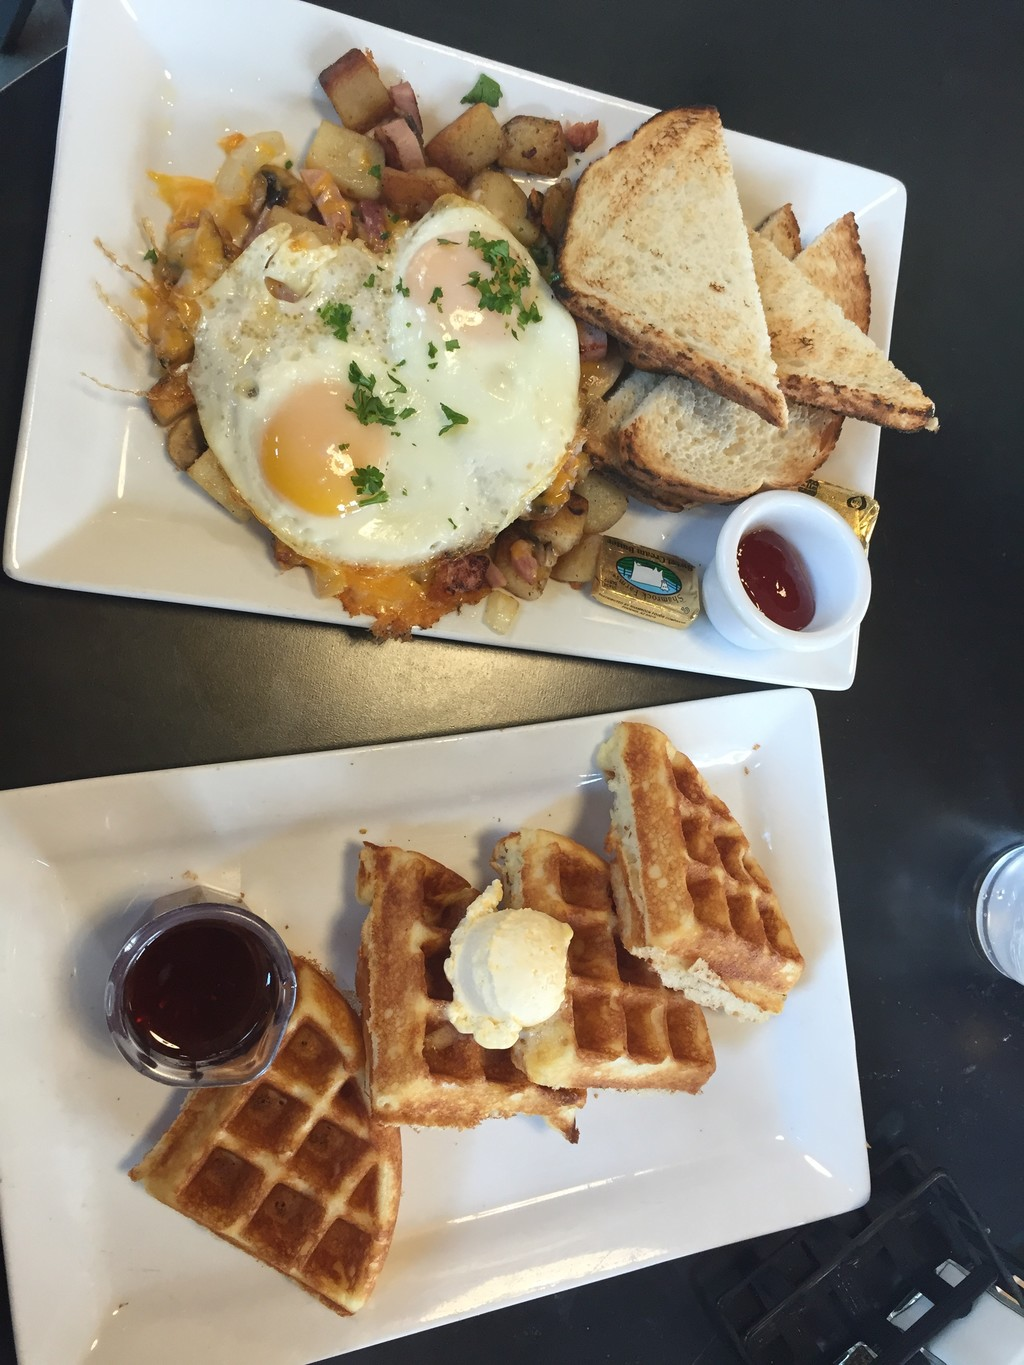 Ncounter | Where to eat in Tempe on